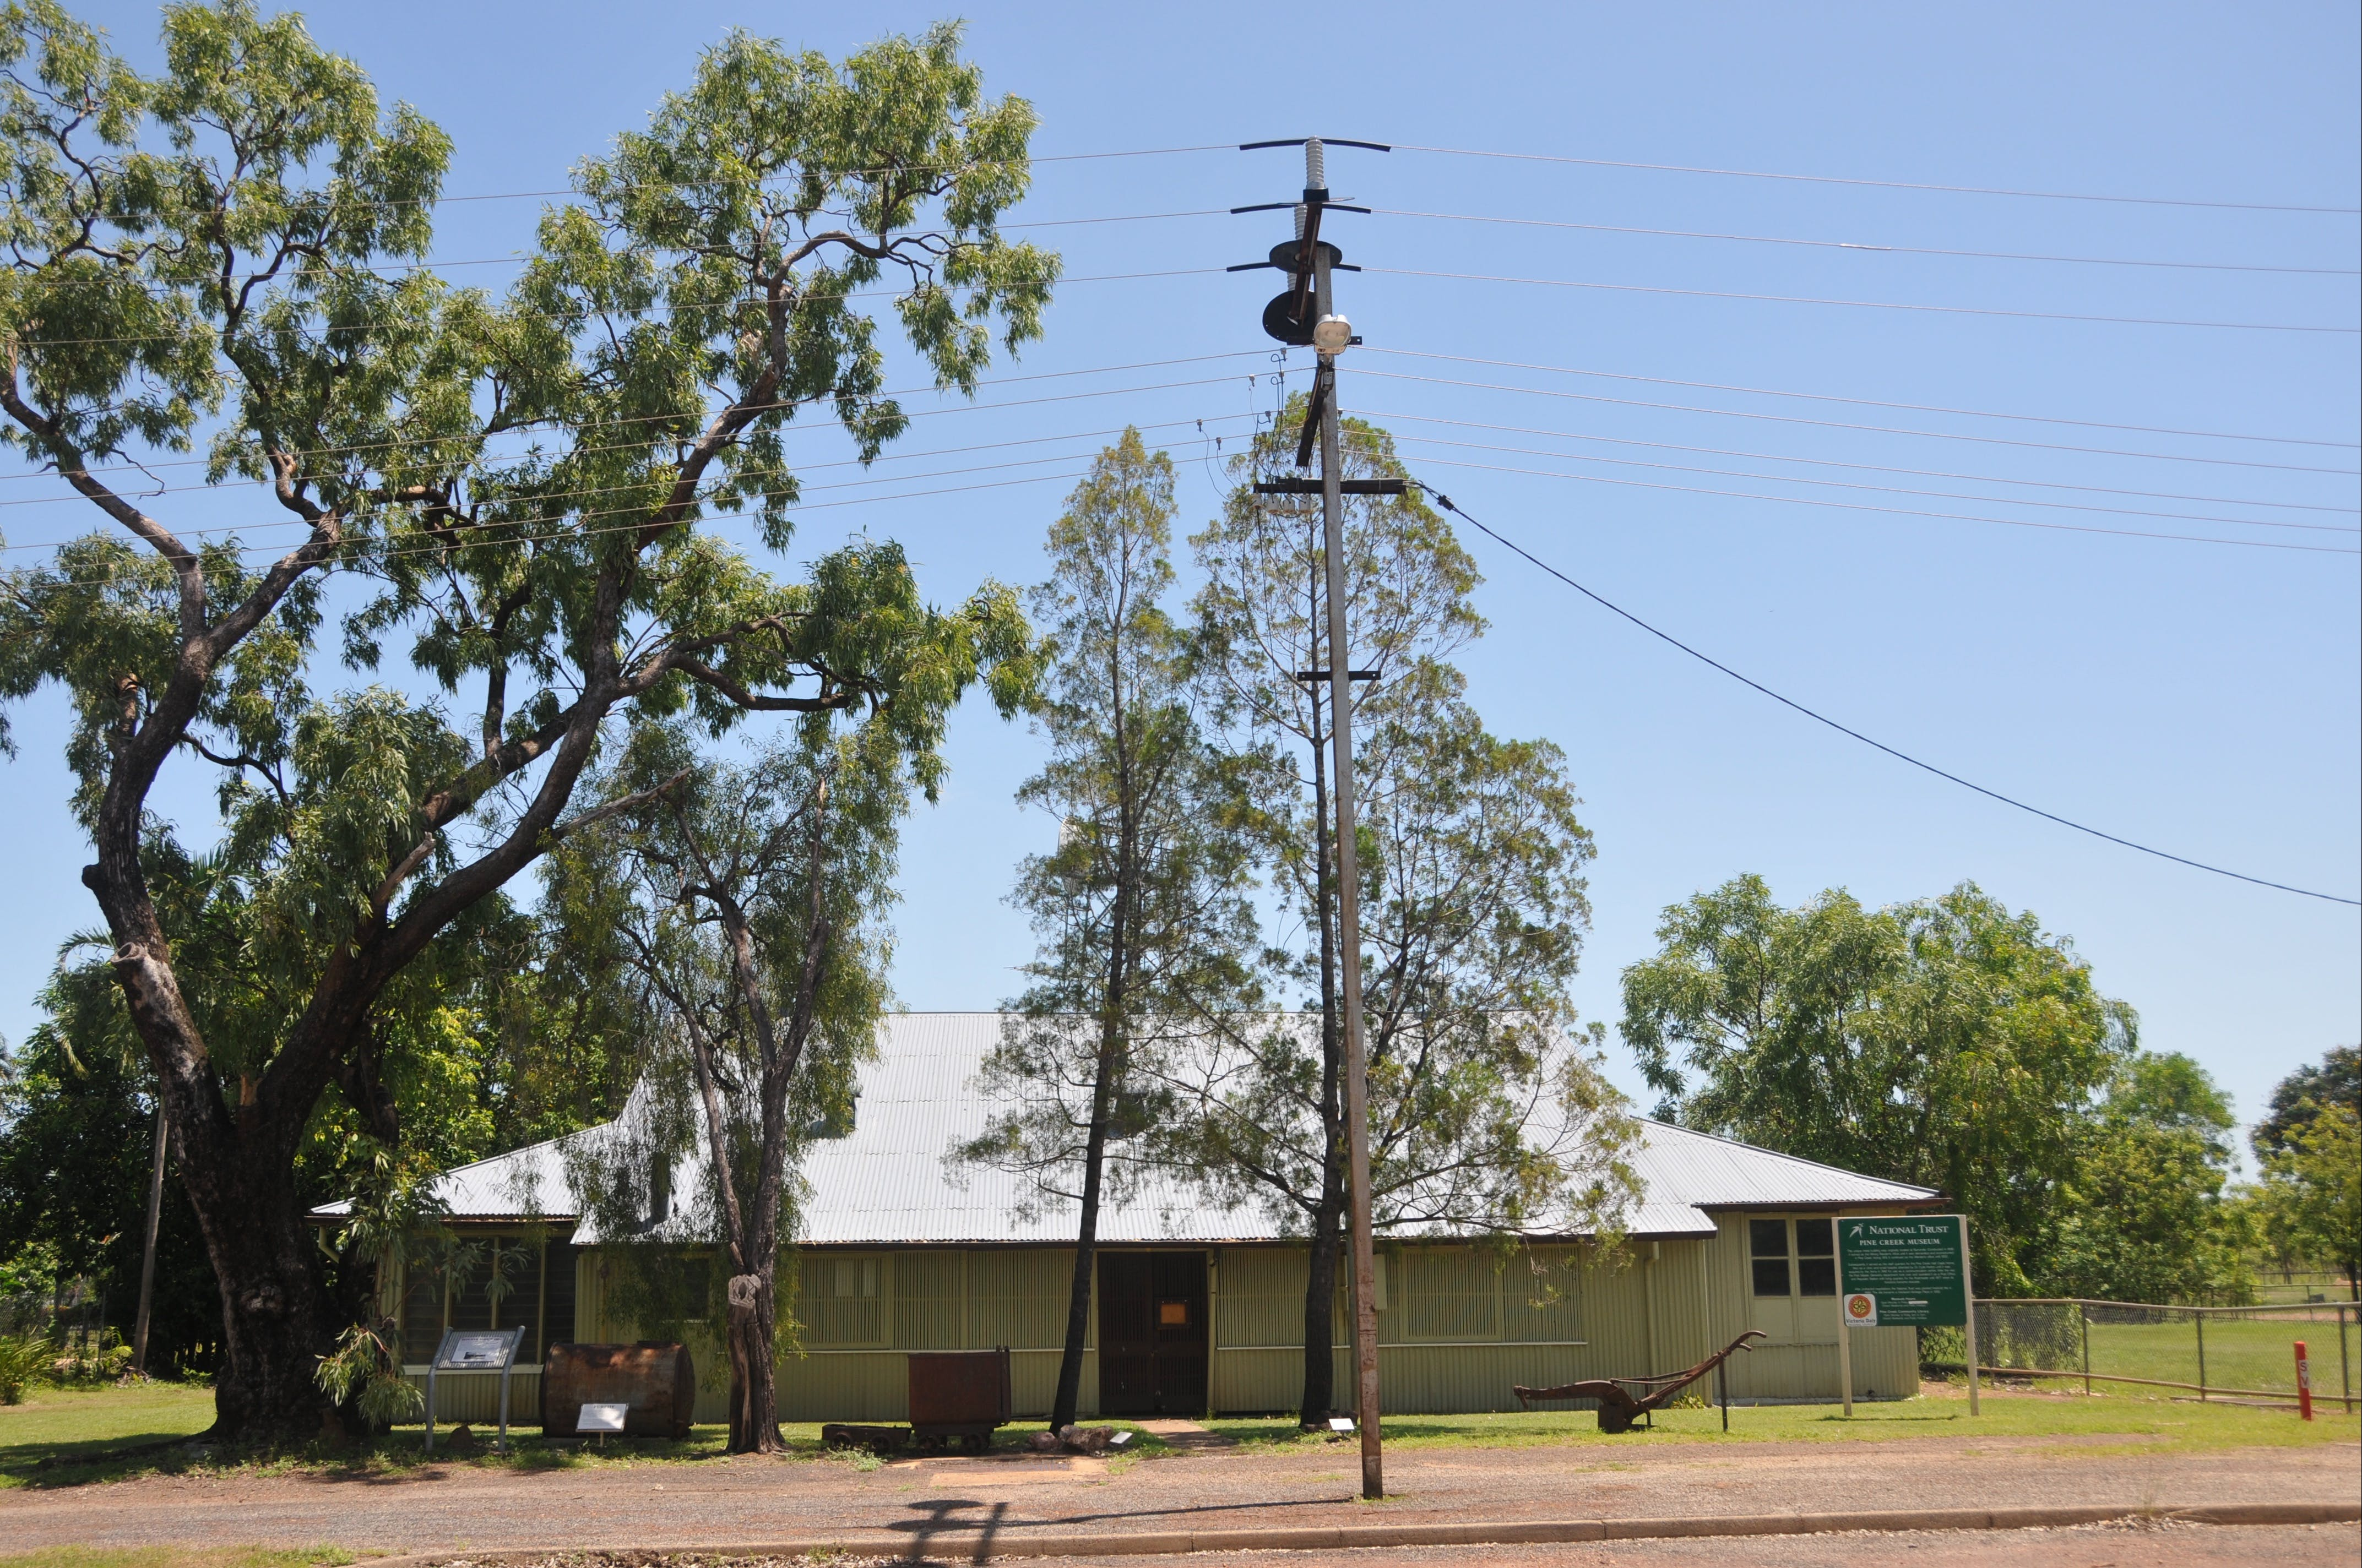 Pine Creek Post Office and Repeater Station - Tourism Brisbane